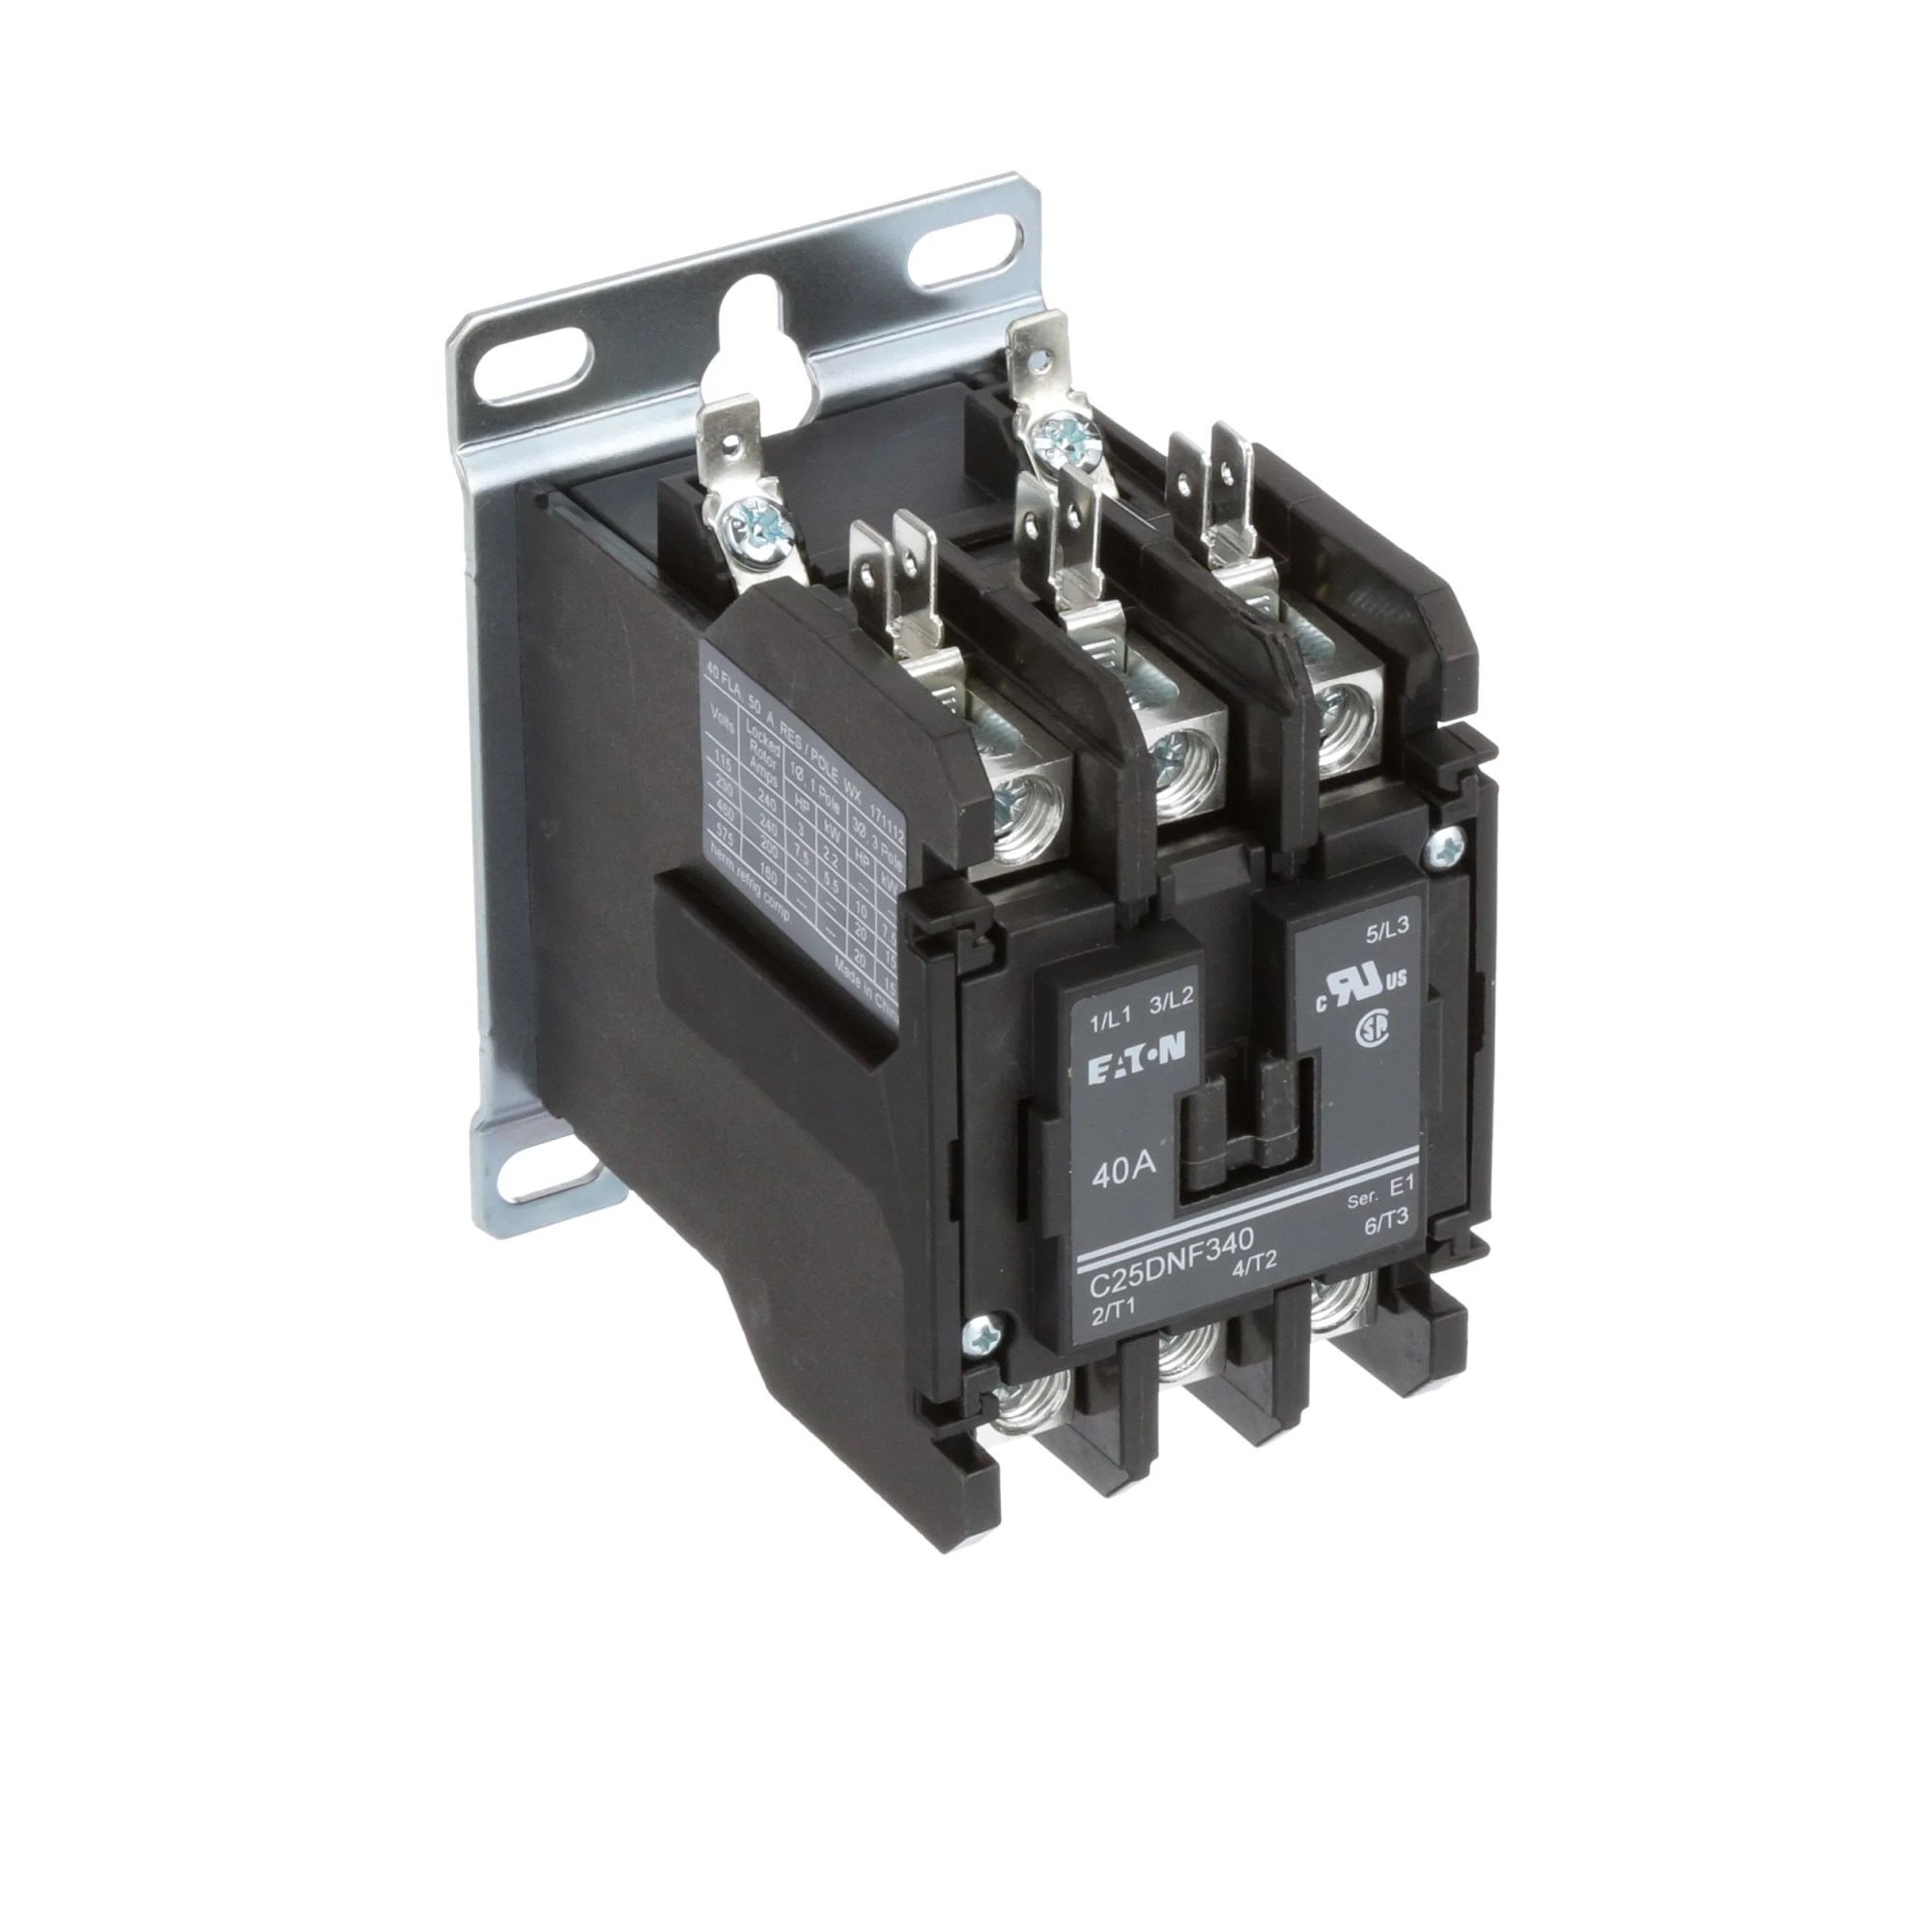 hight resolution of eaton cutler hammer c25dnf340a definite purpose control contactor 3 pole 40a 120vac coil allied electronics automation